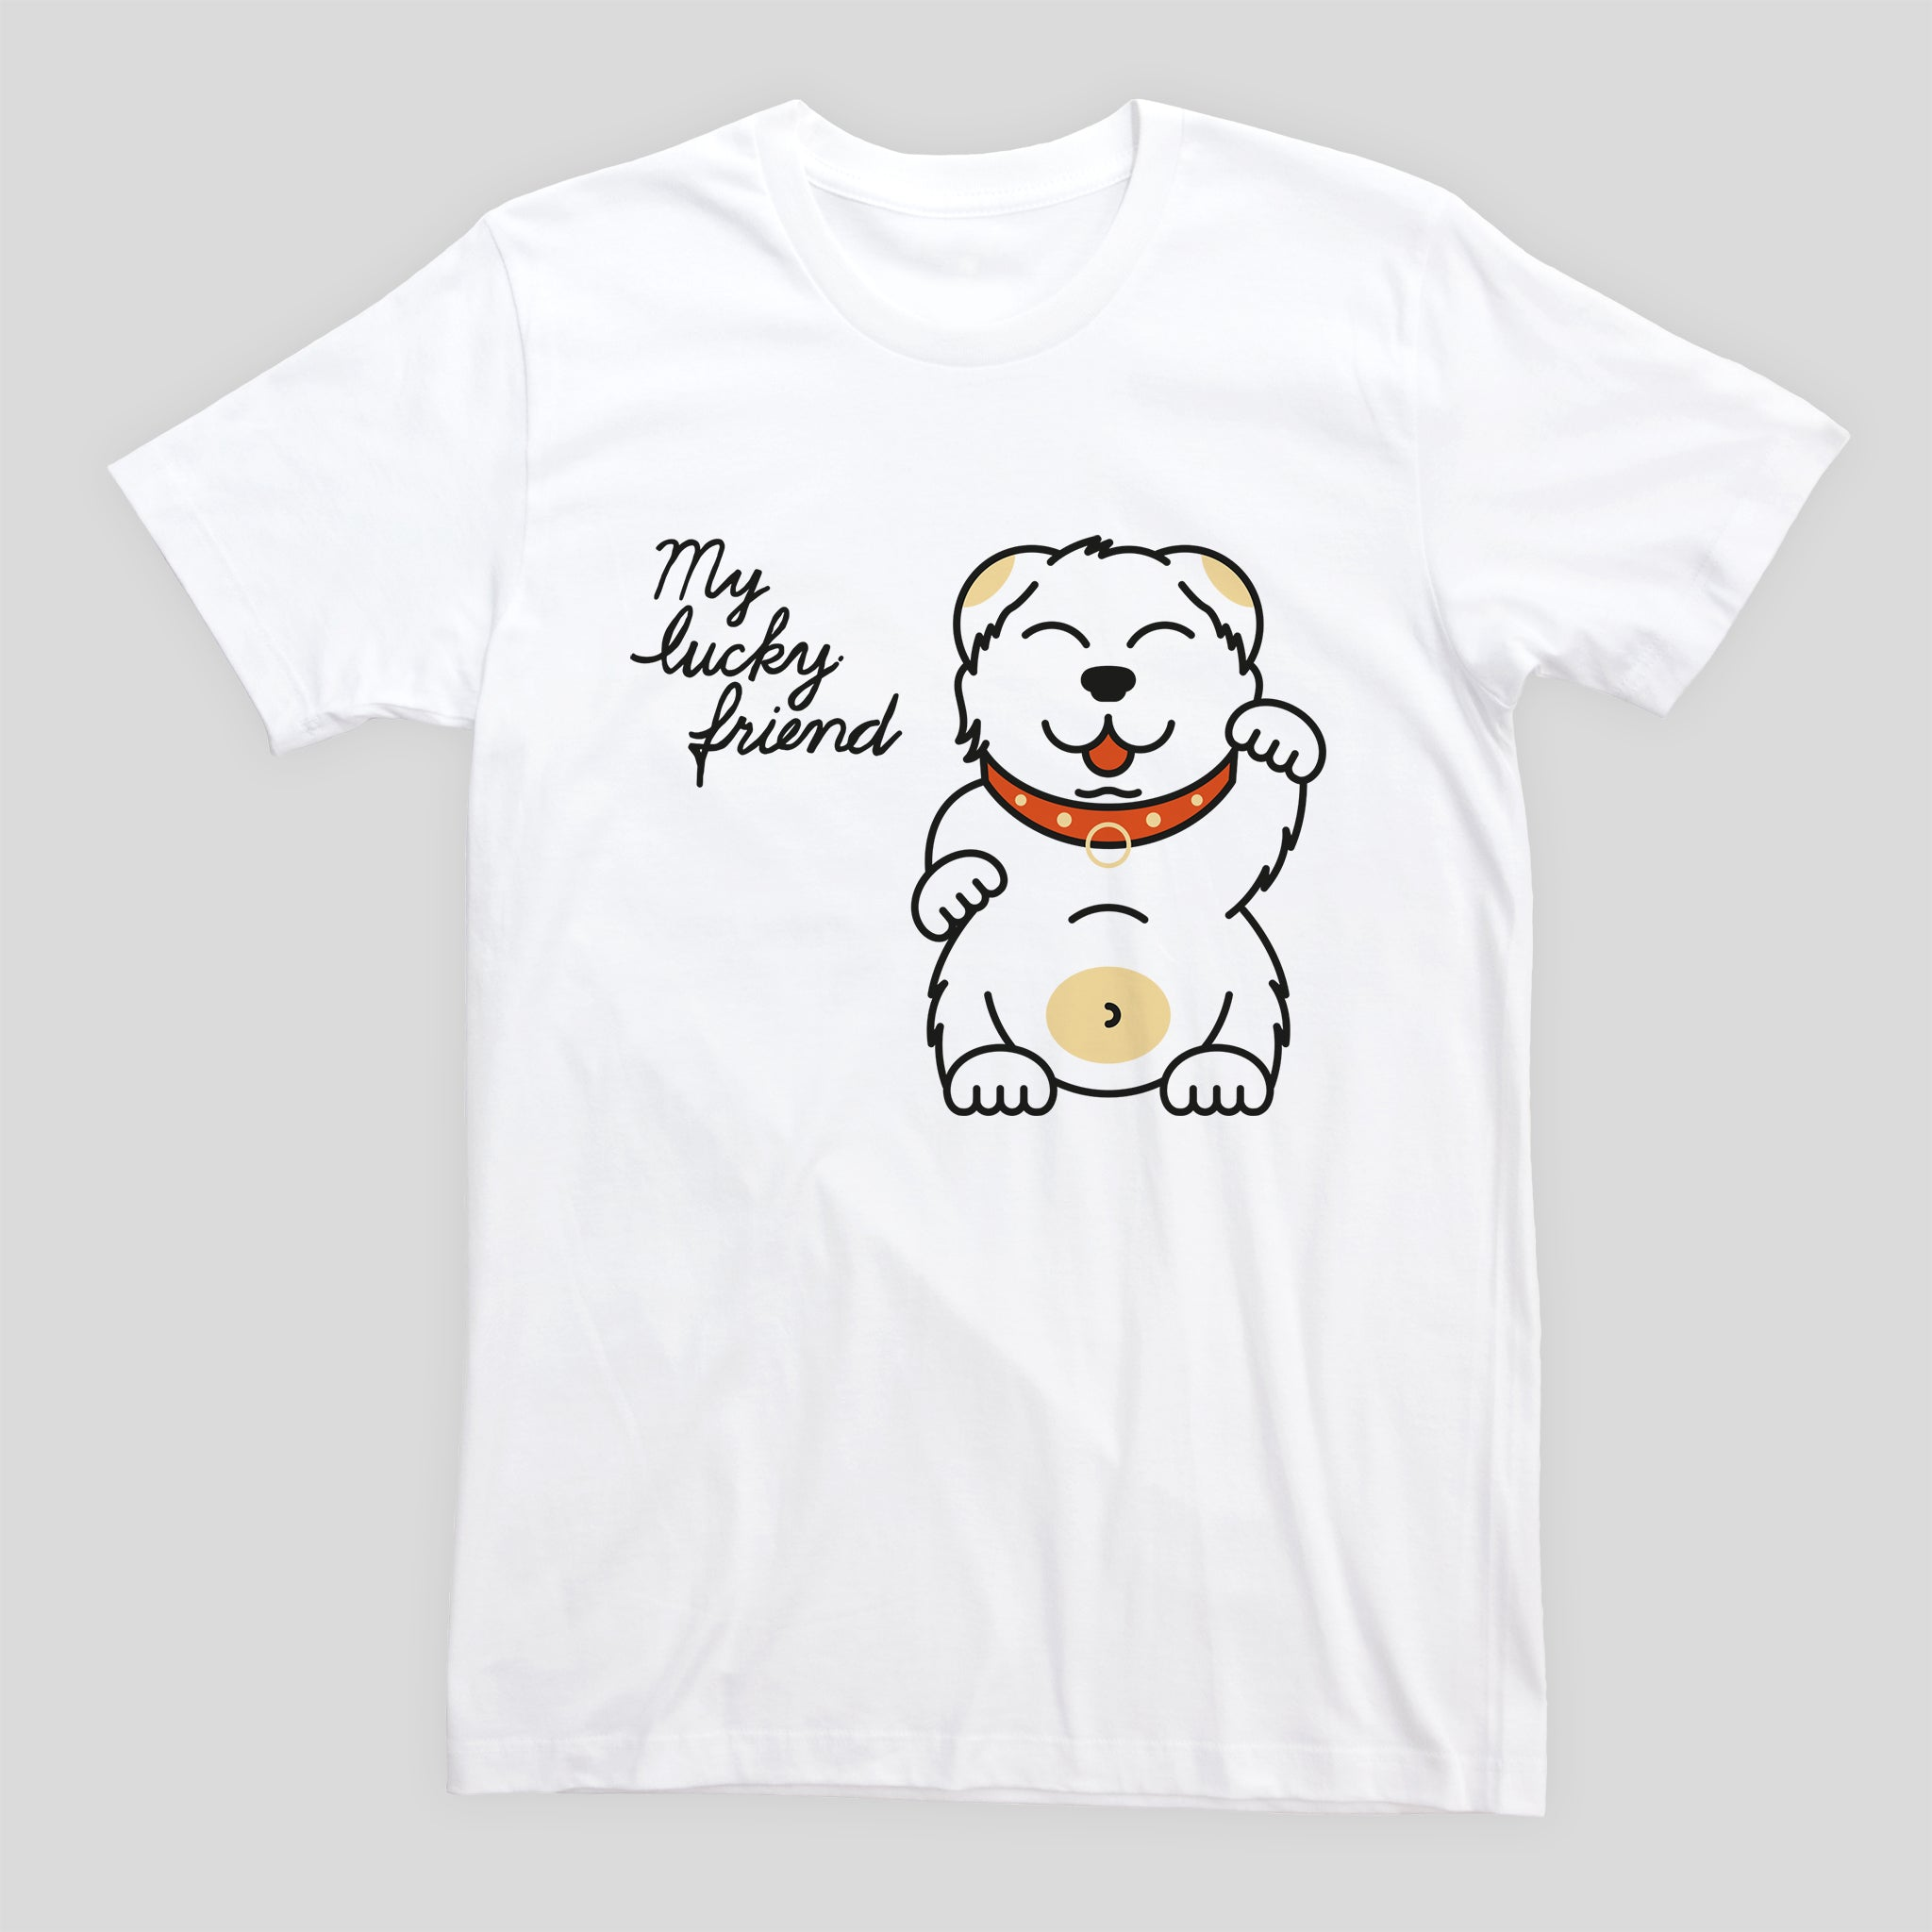 My Lucky Friend - Mens T-shirt